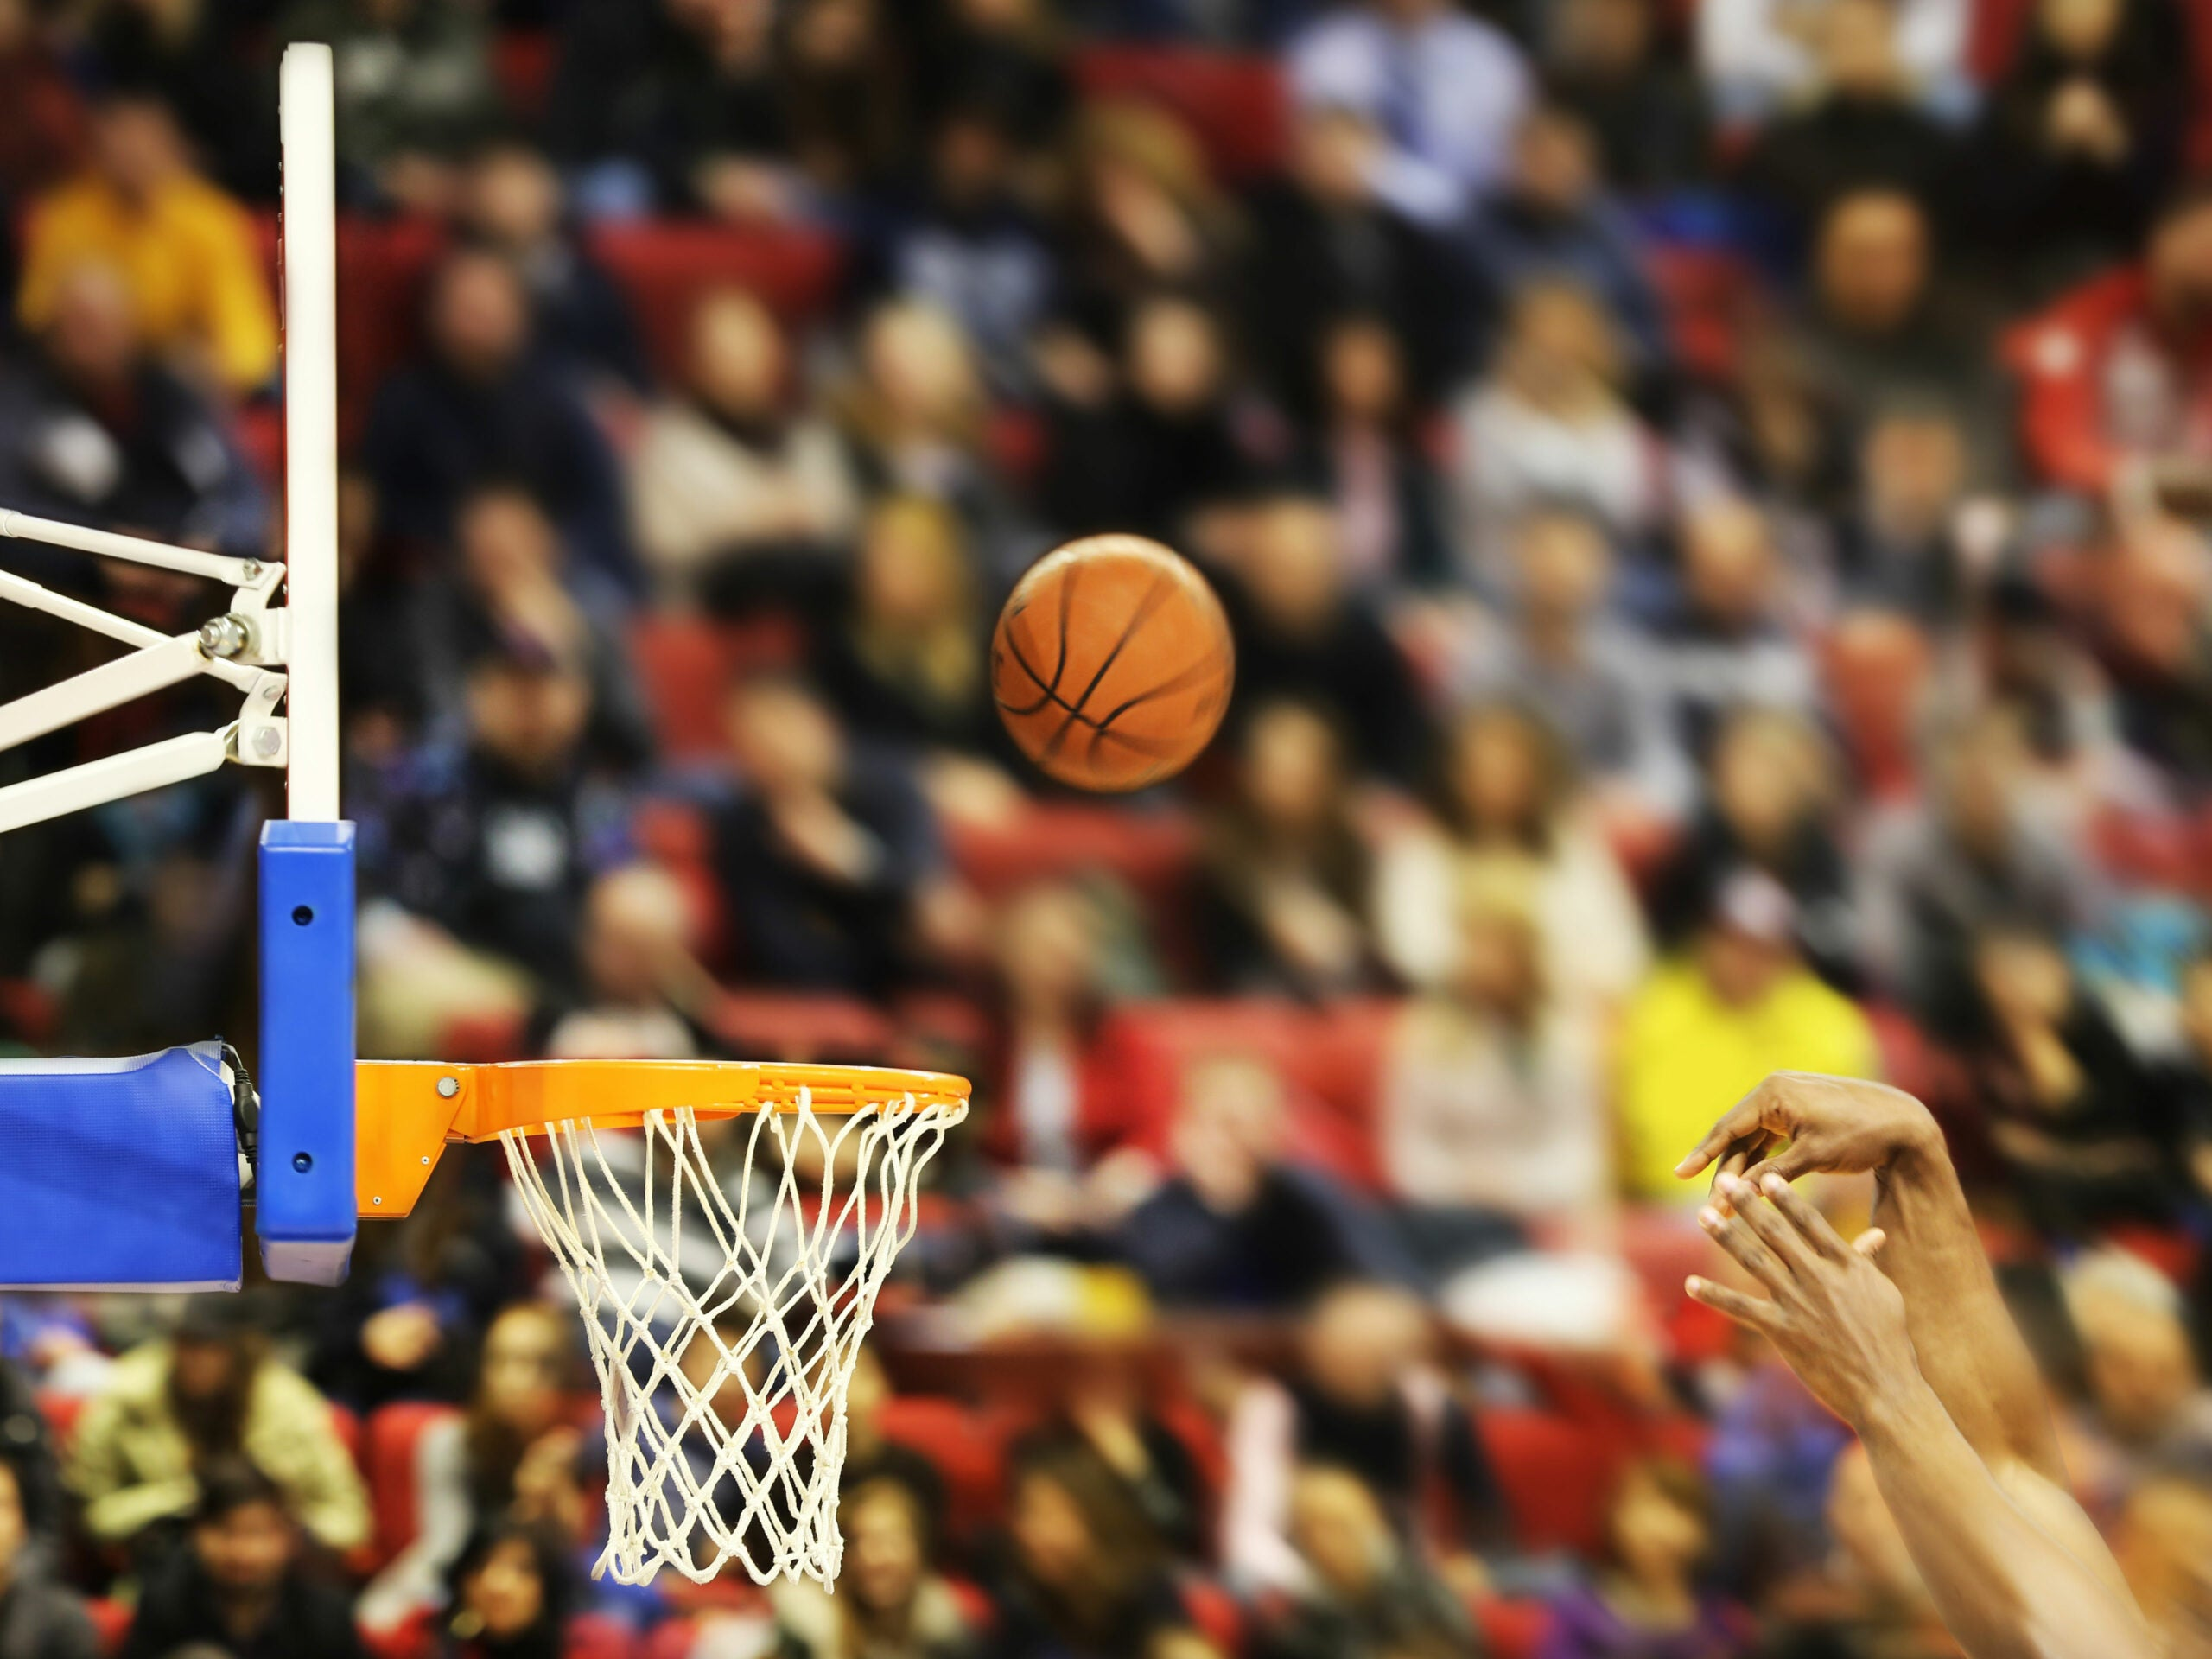 Pro basketball players' synchronous movements might help us predict the next NBA champ